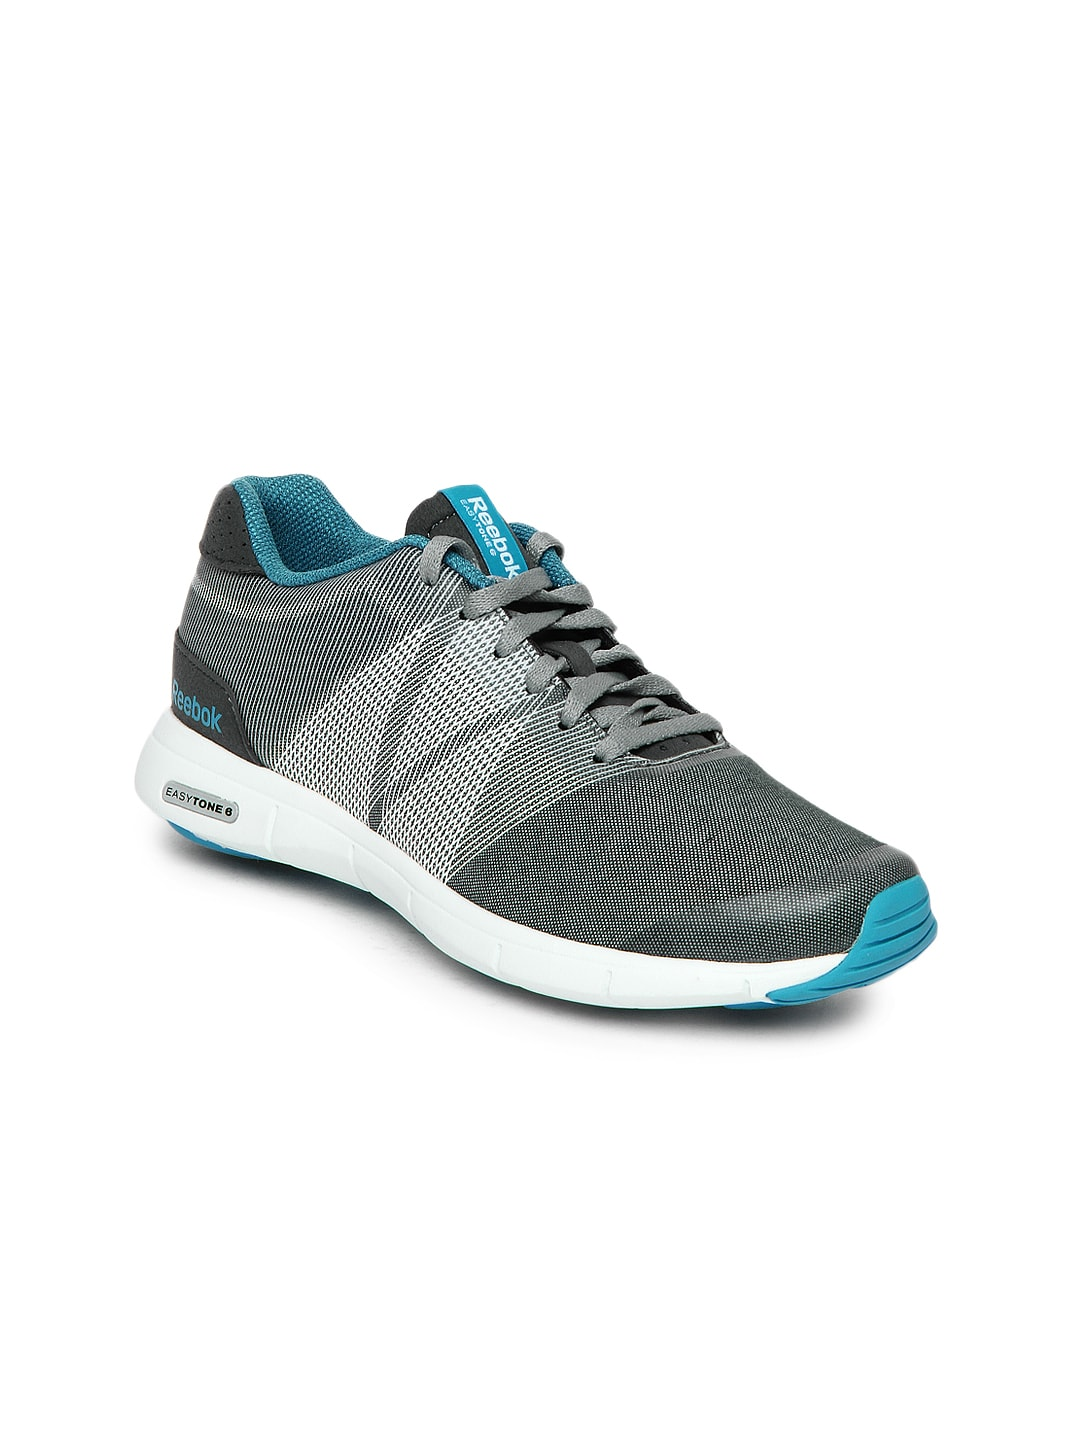 reebok sports shoes with price 28 images reebok sports